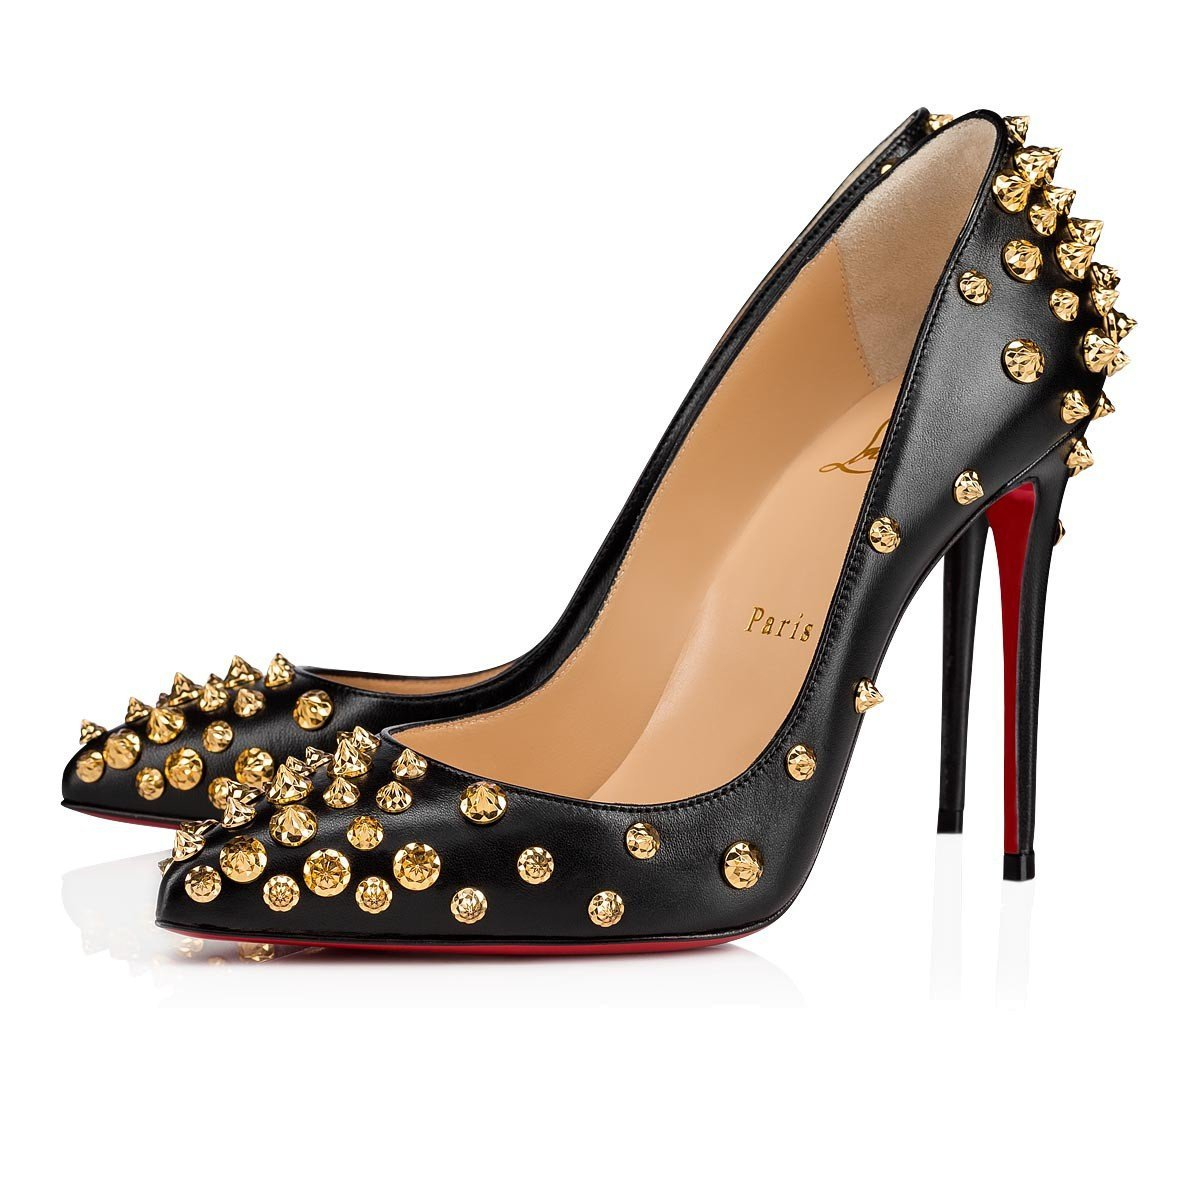 Image of Christian Louboutin Pointed high heels 9/2